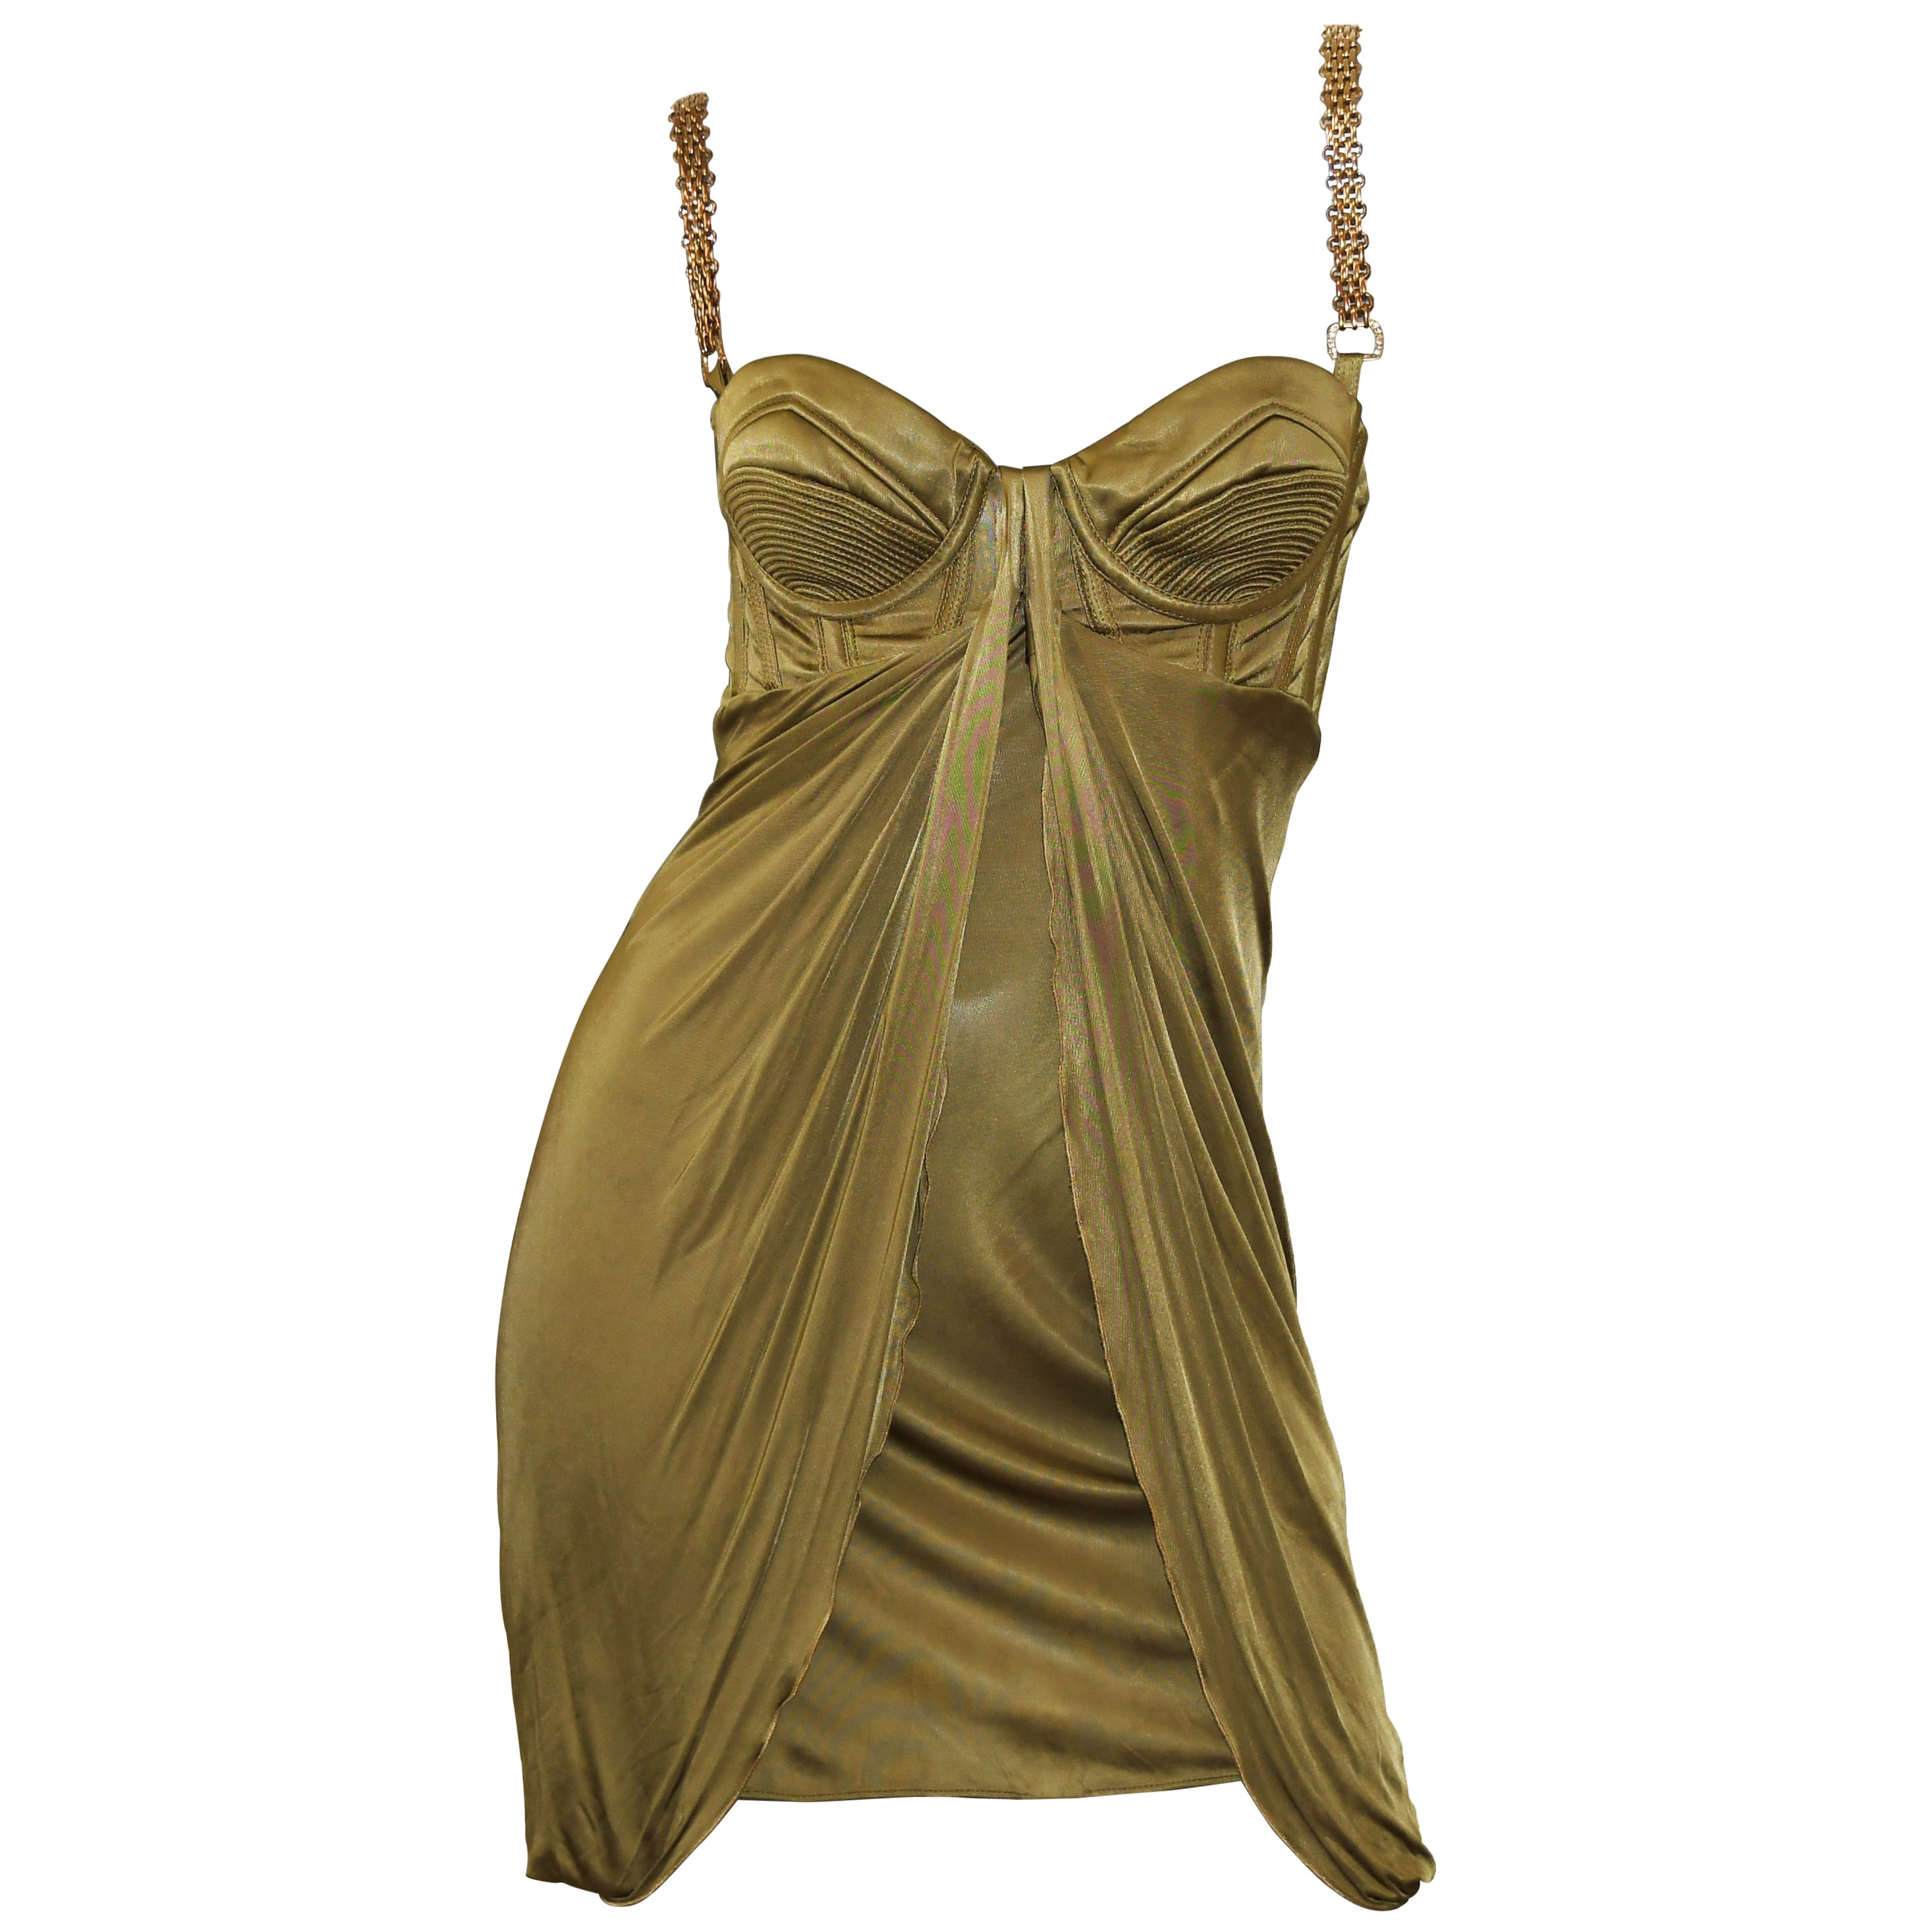 3bd96890e3dc8d Versace Chain Embellished Olive Corset Cocktail Dress, Size 40 and 44 For  Sale at 1stdibs